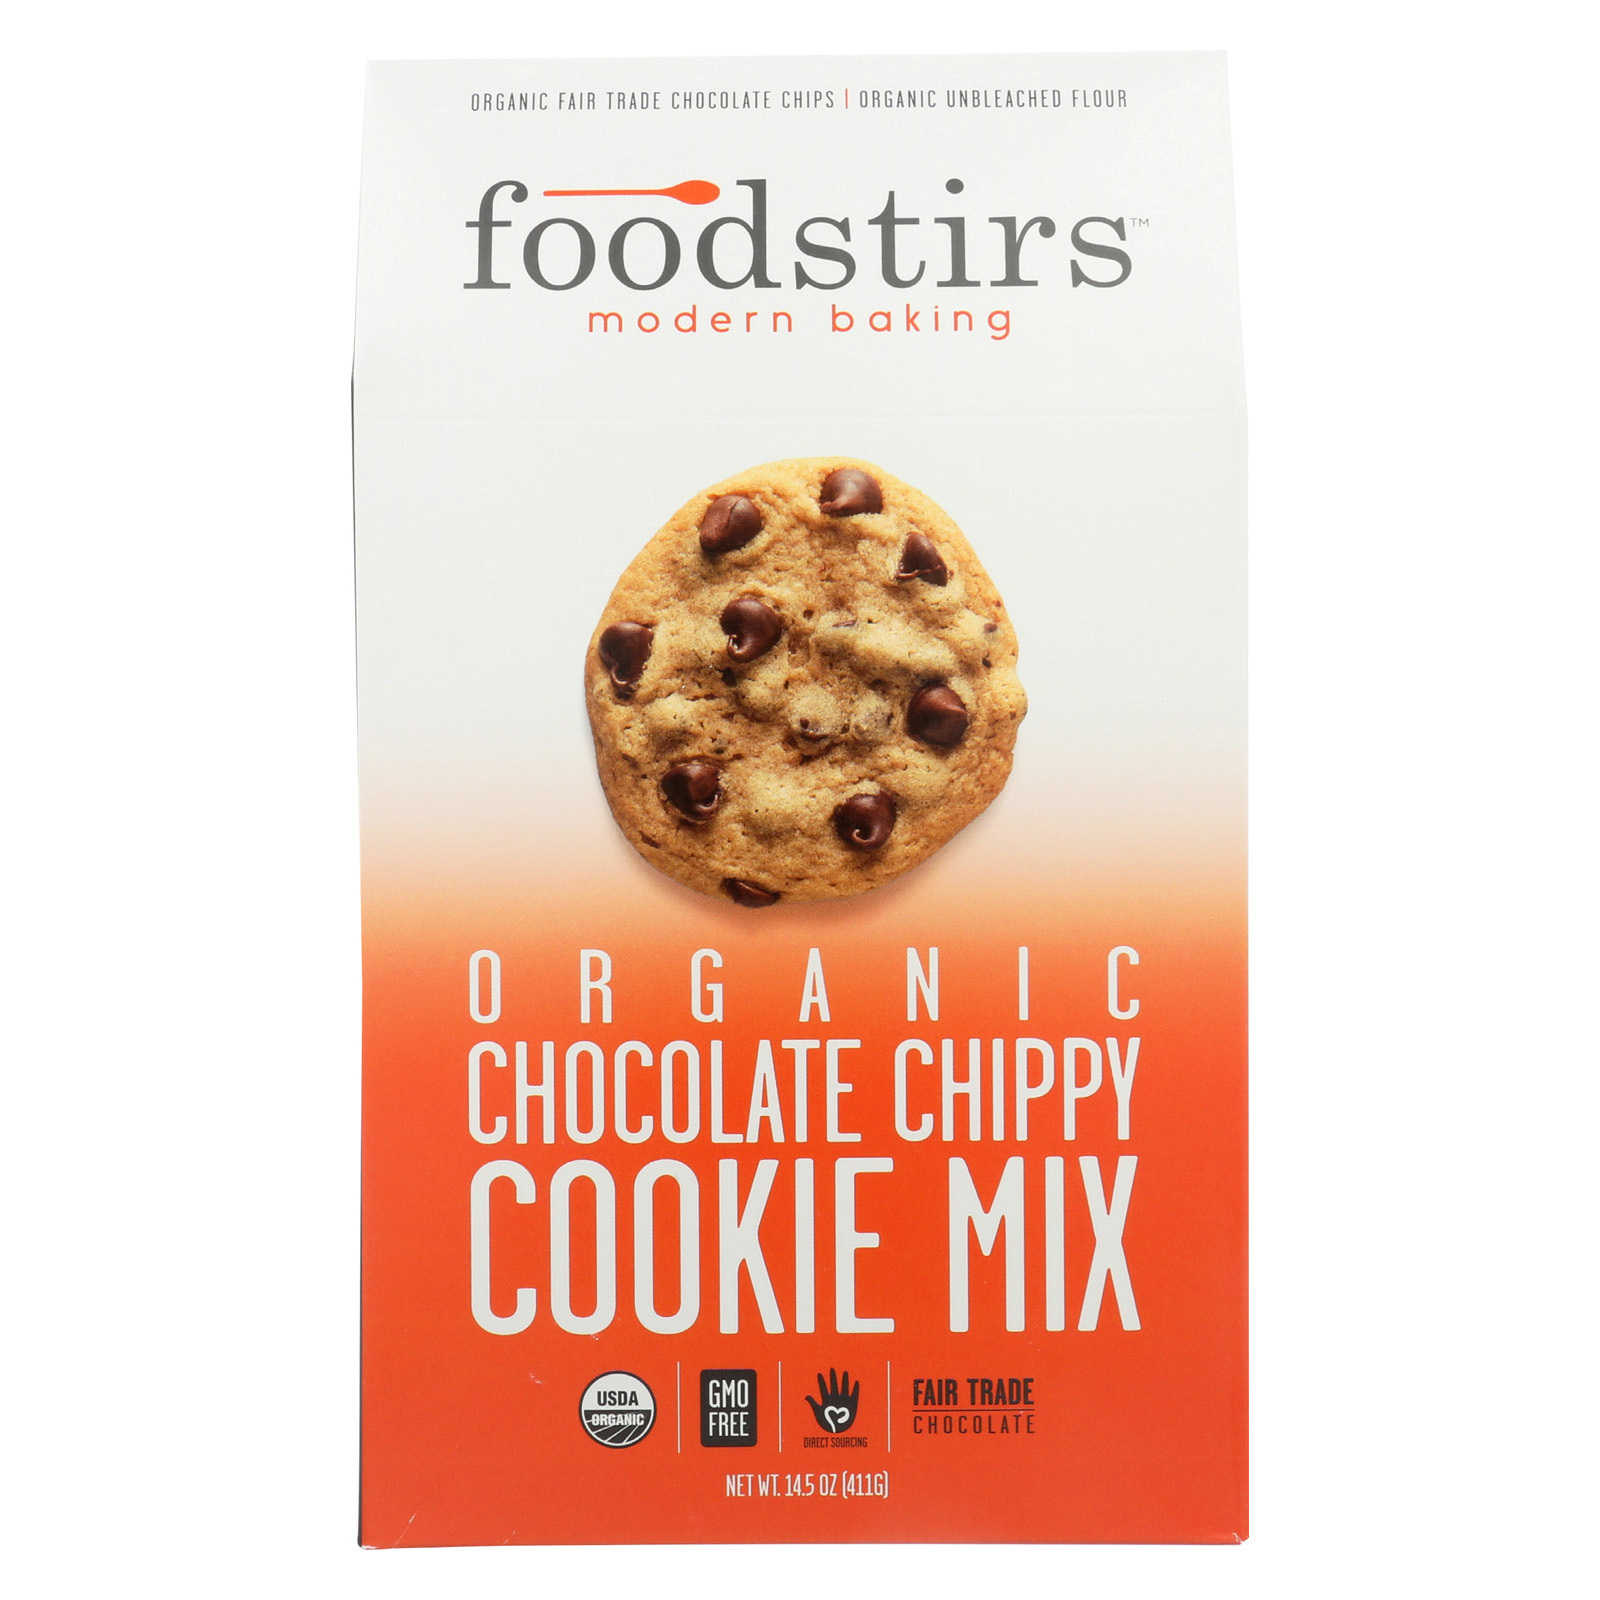 Foodstirs Organic Baking Mix - Chocolate Chippy - Case of 6 - 14.5 oz